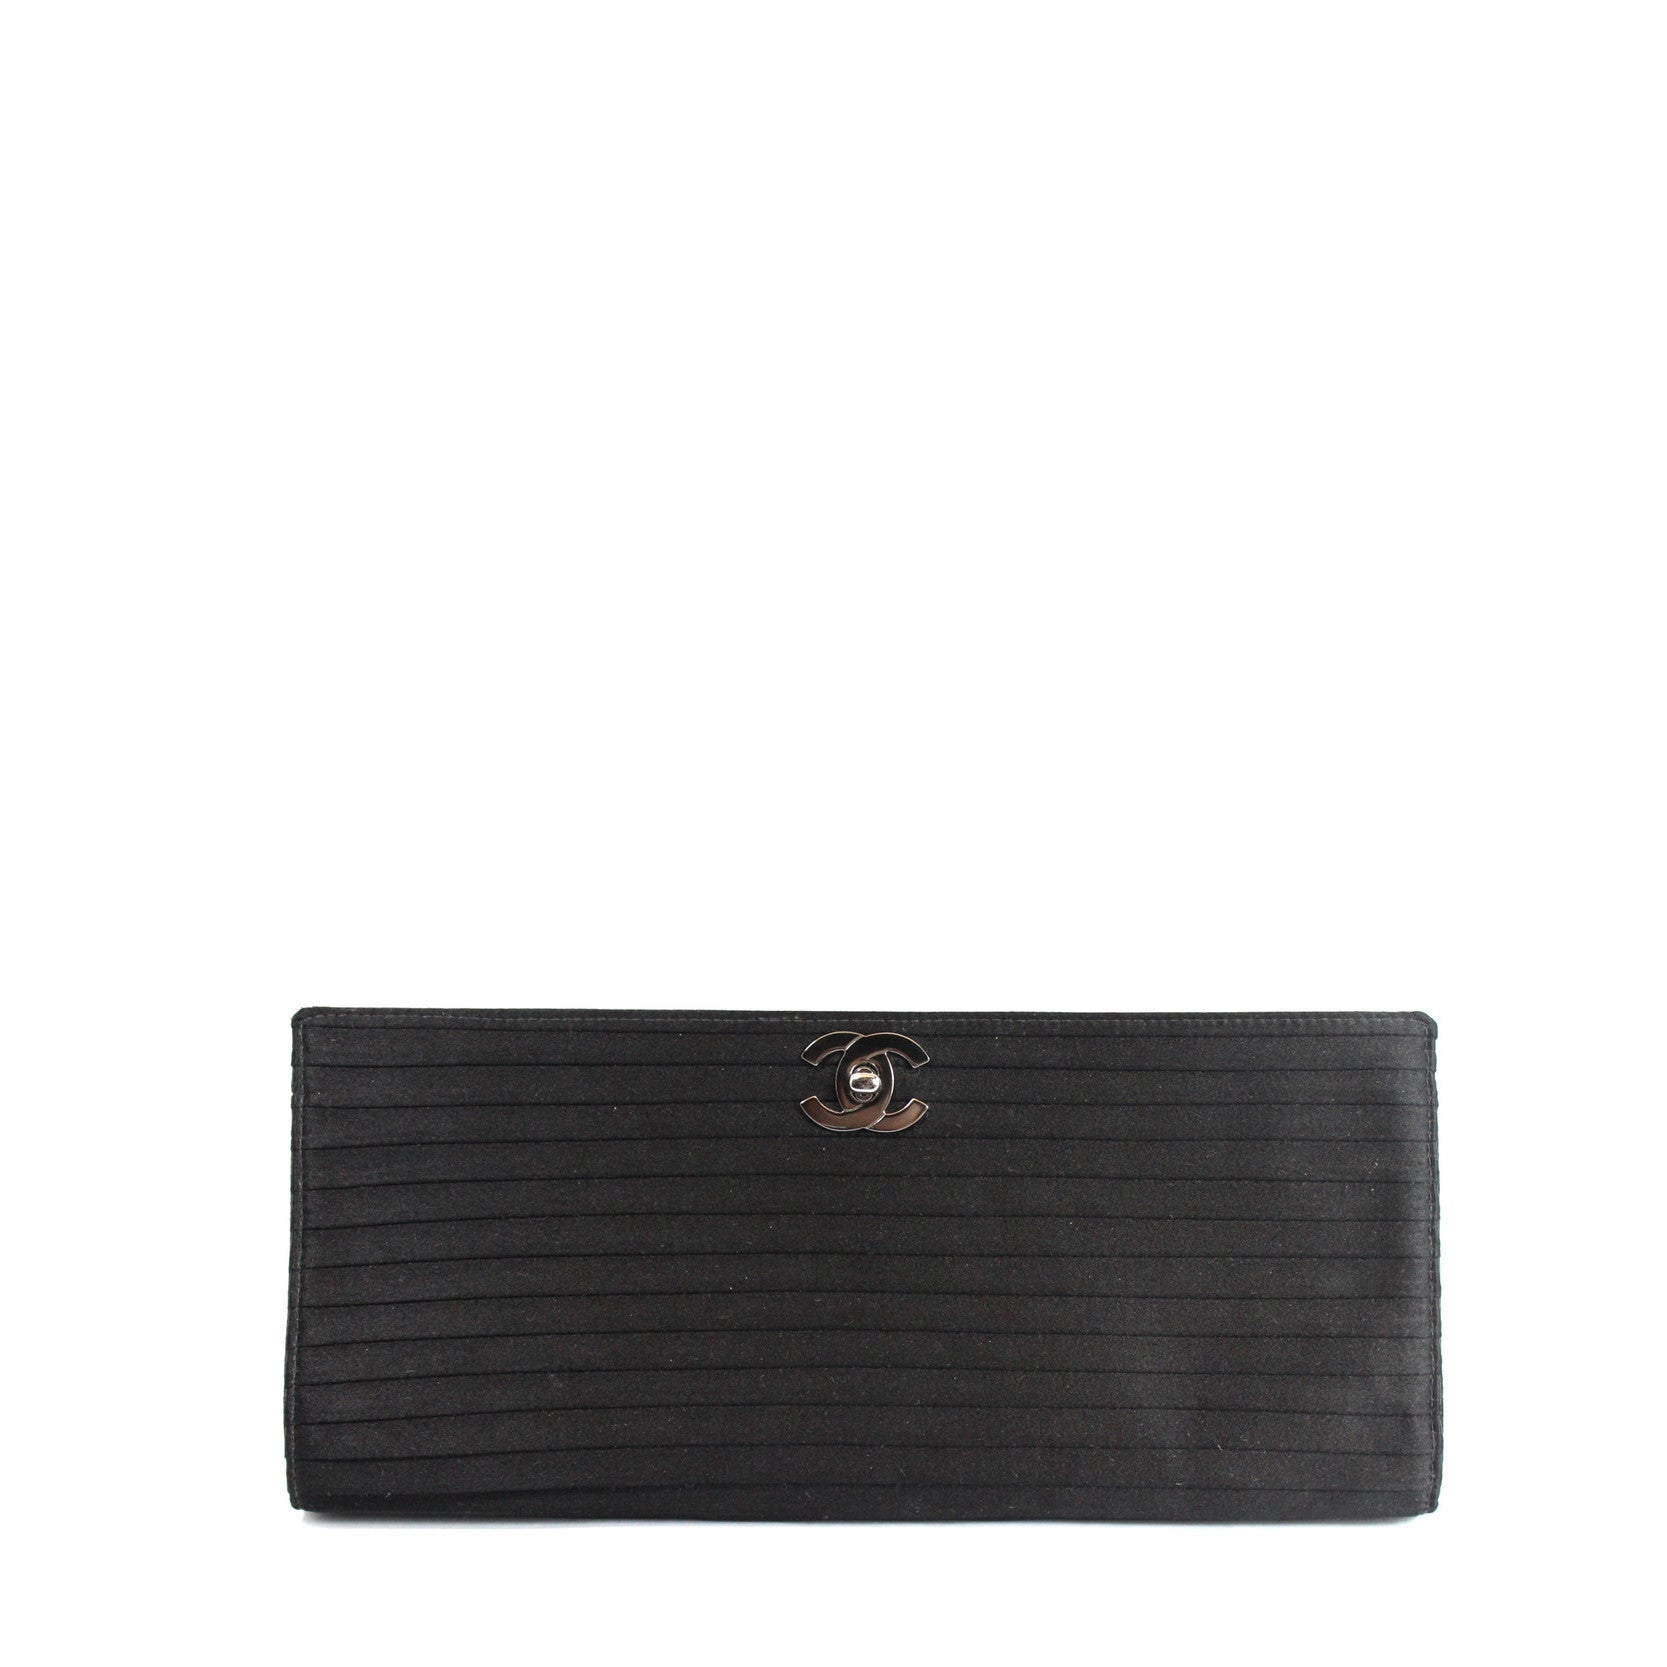 Chanel Black Satin Pleated Clutch - Encore Consignment - 11